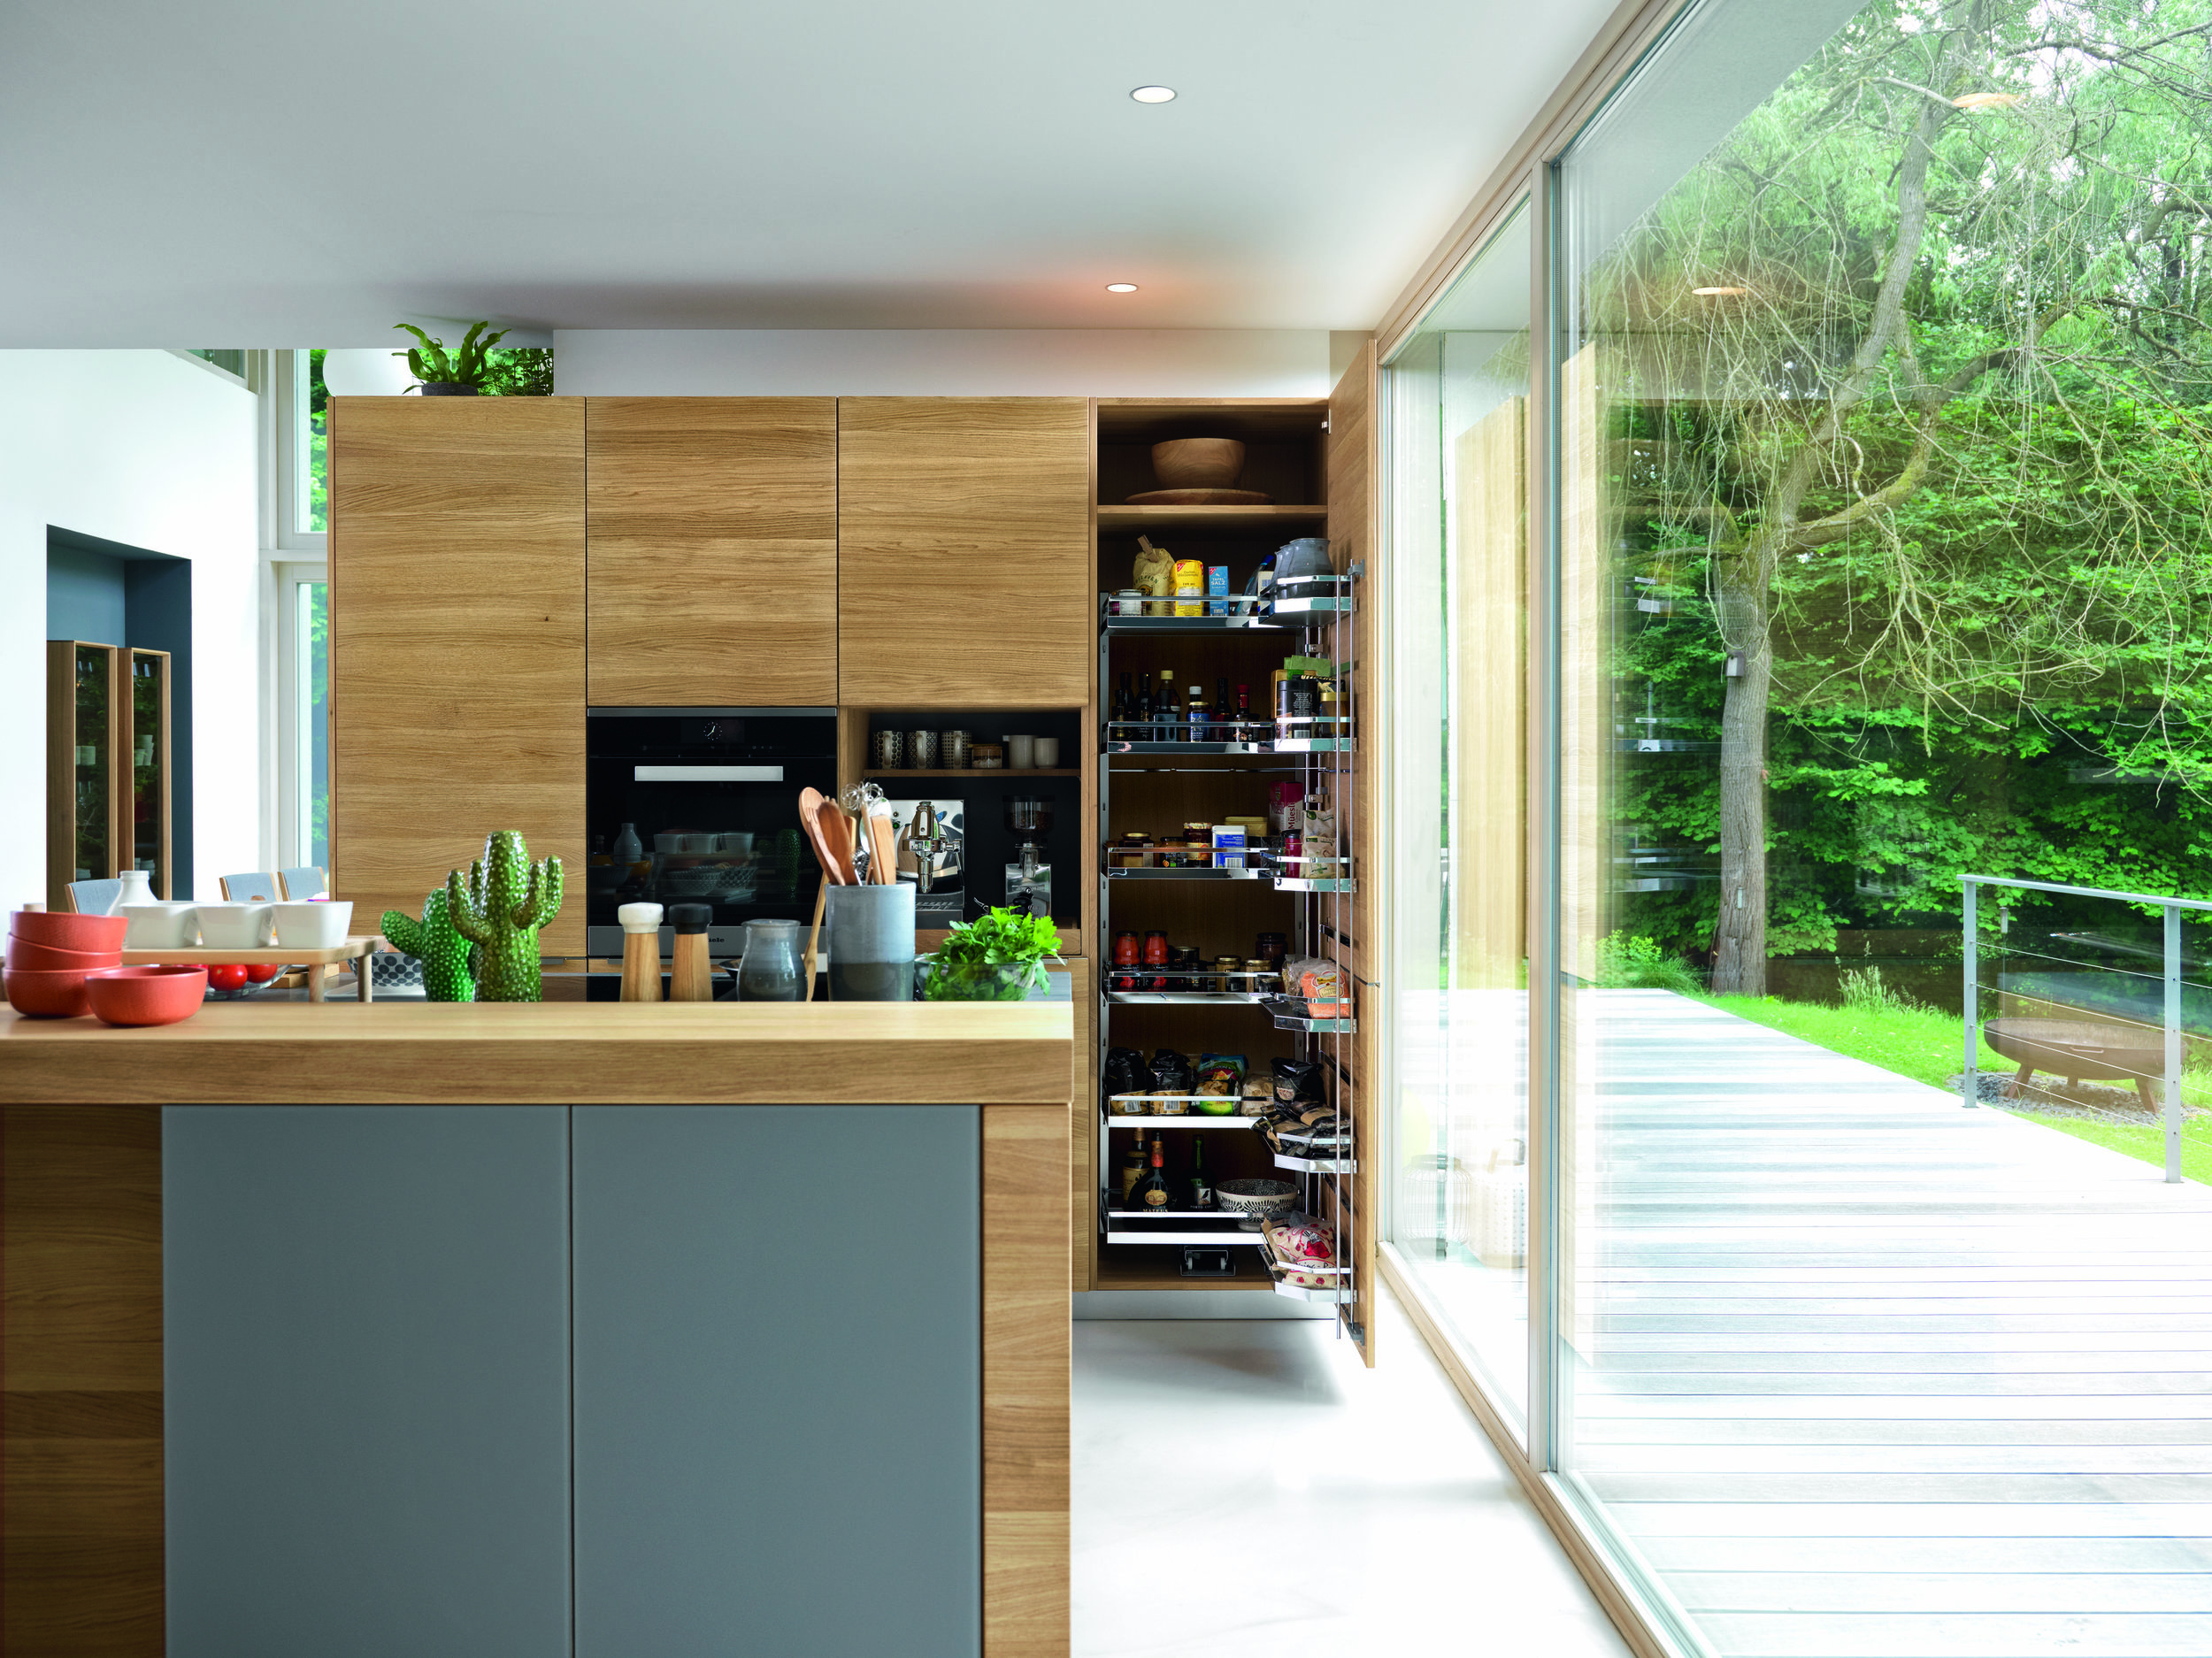 4 Principles To Design Your Dream Japanese Kitchen